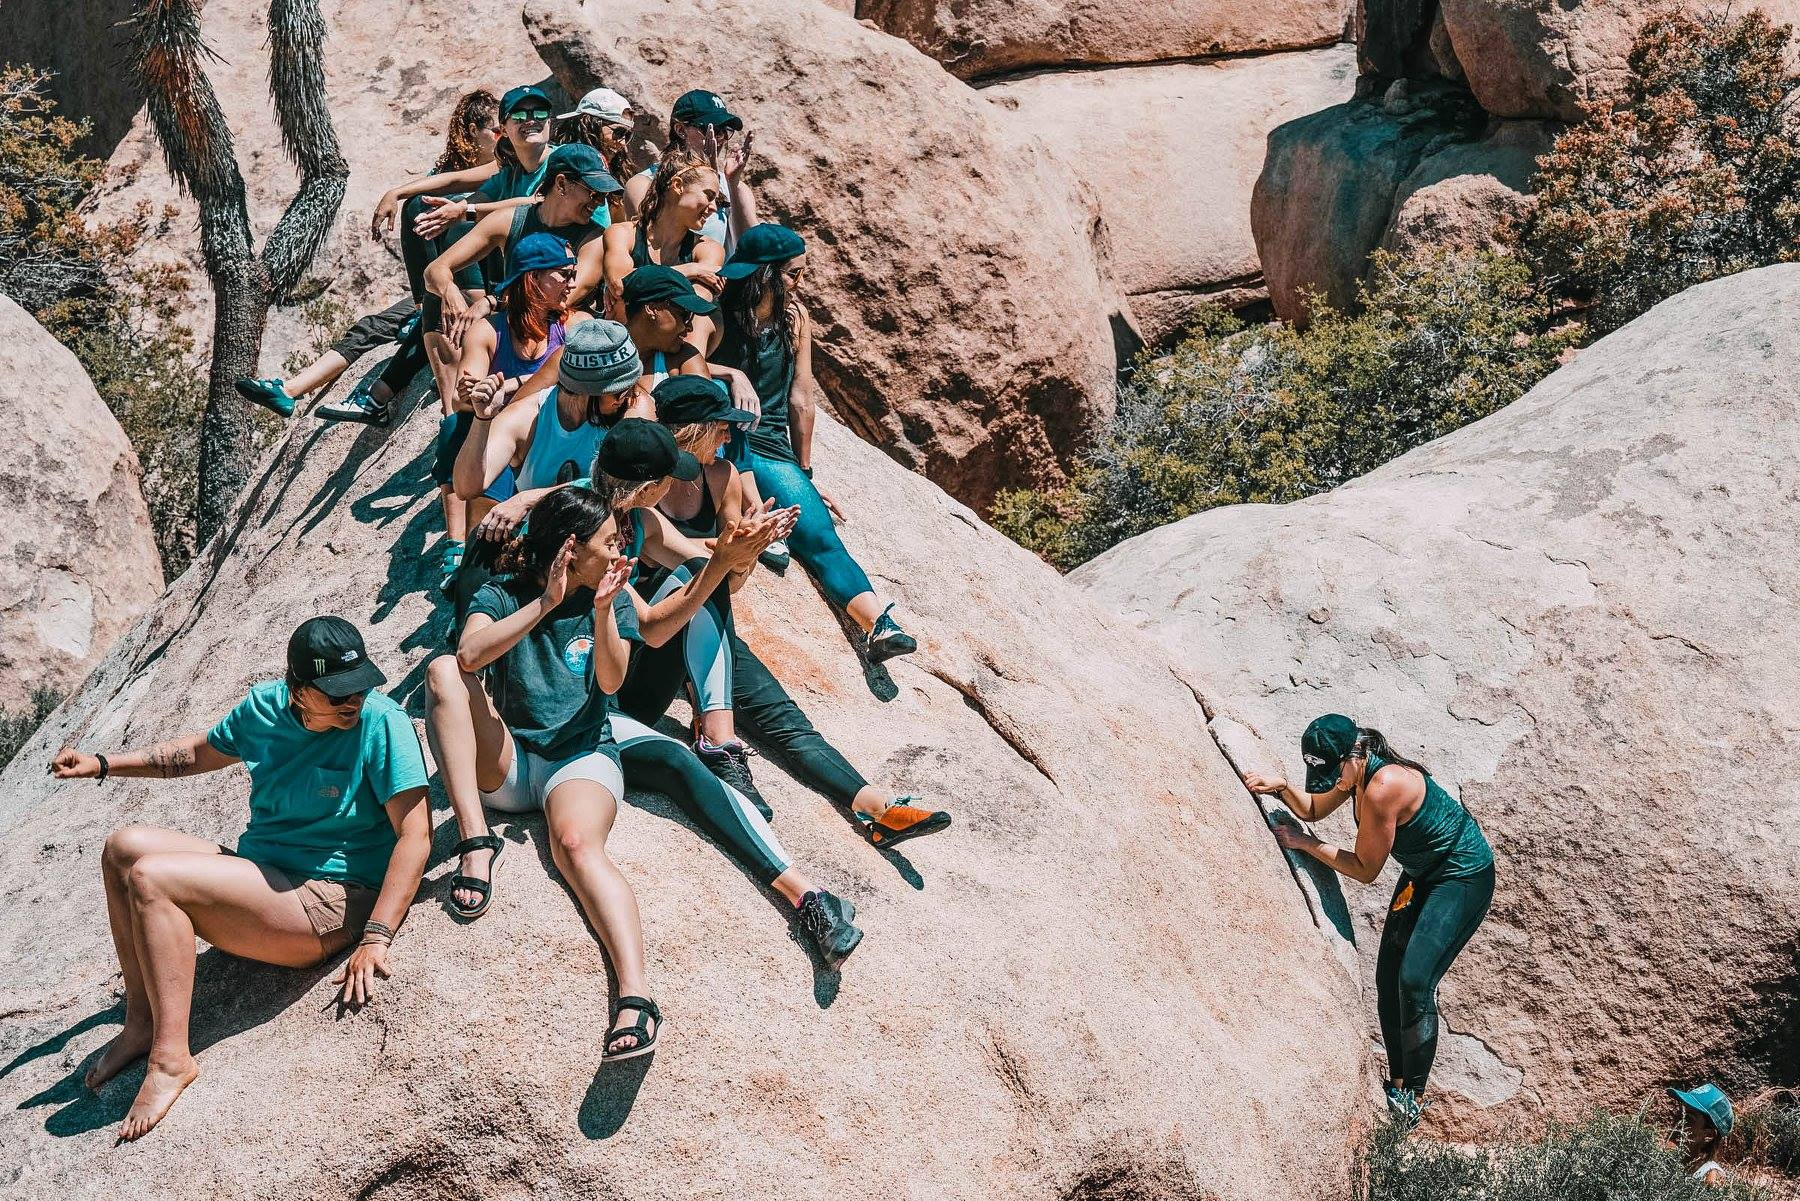 Rock climbing in Joshua Tree with powerful women